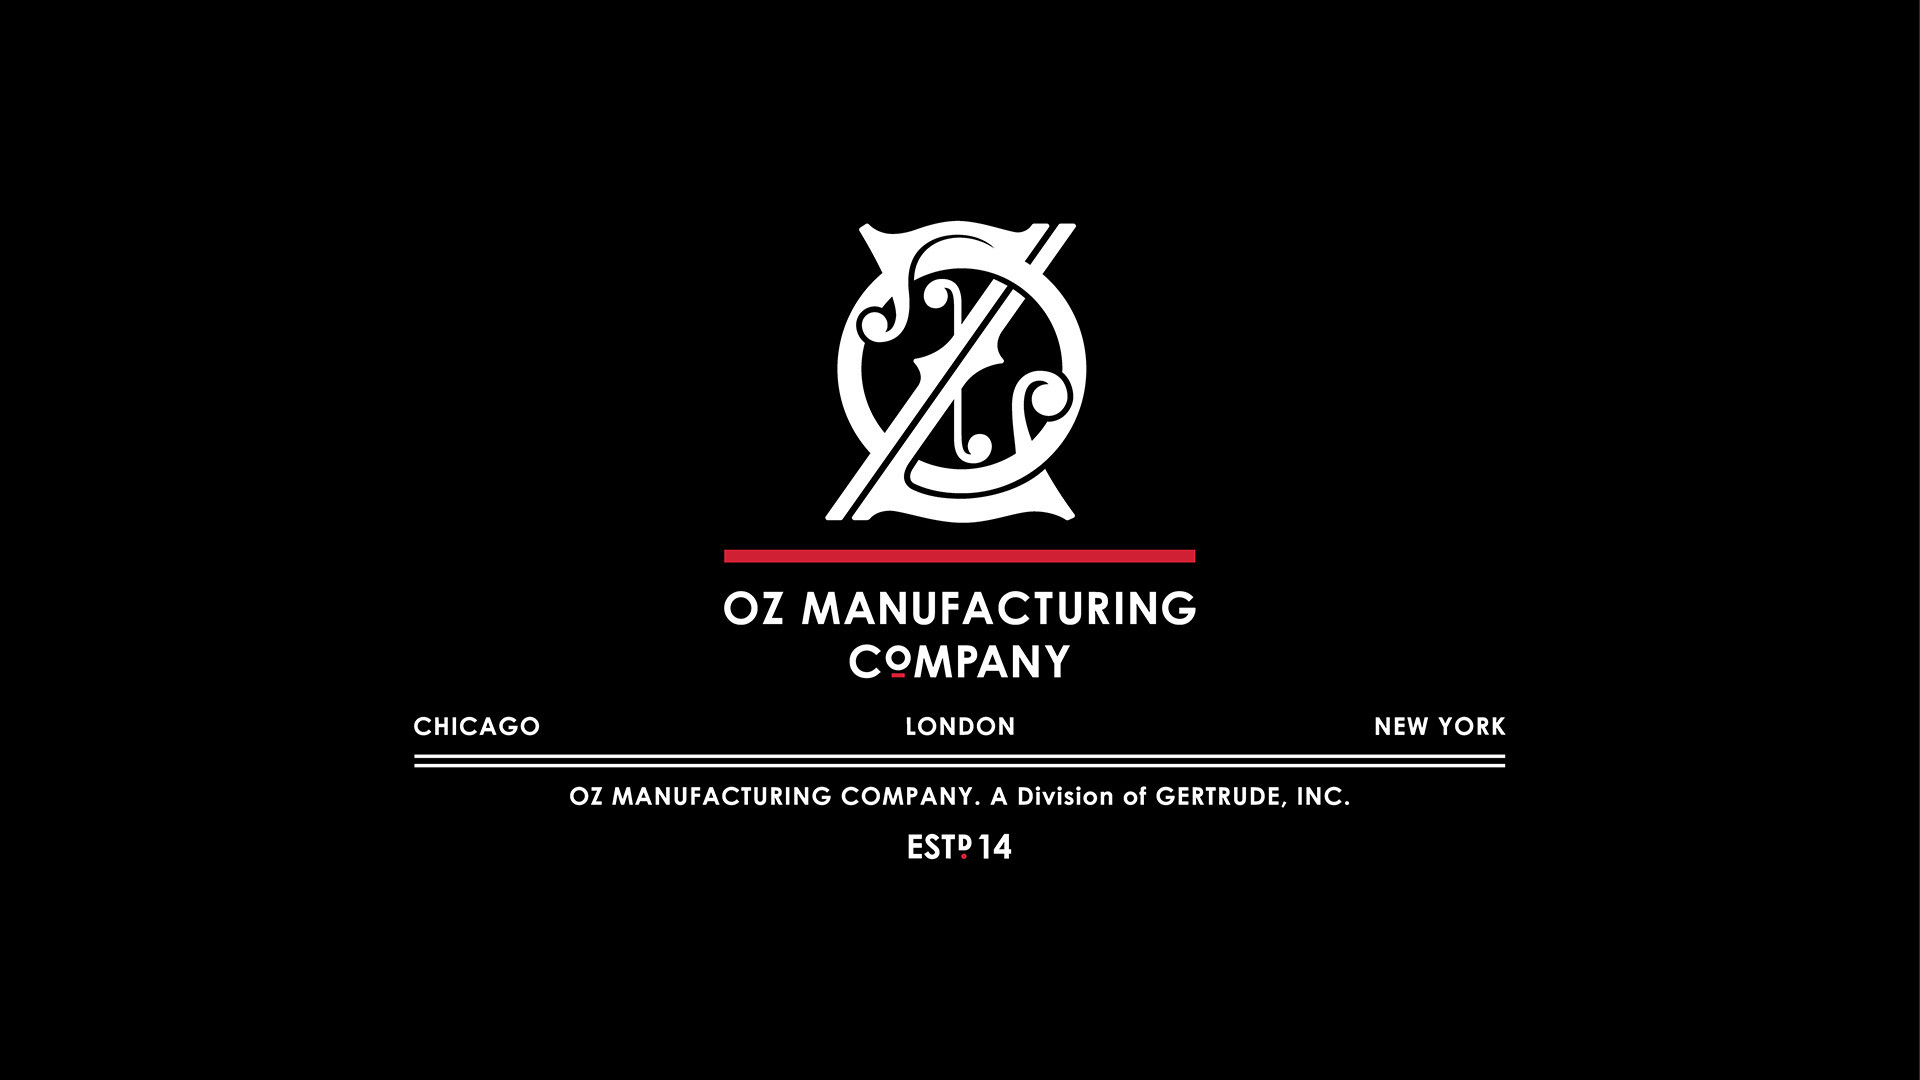 Oz Mfg. Company Master Logo Design on Black Background 01